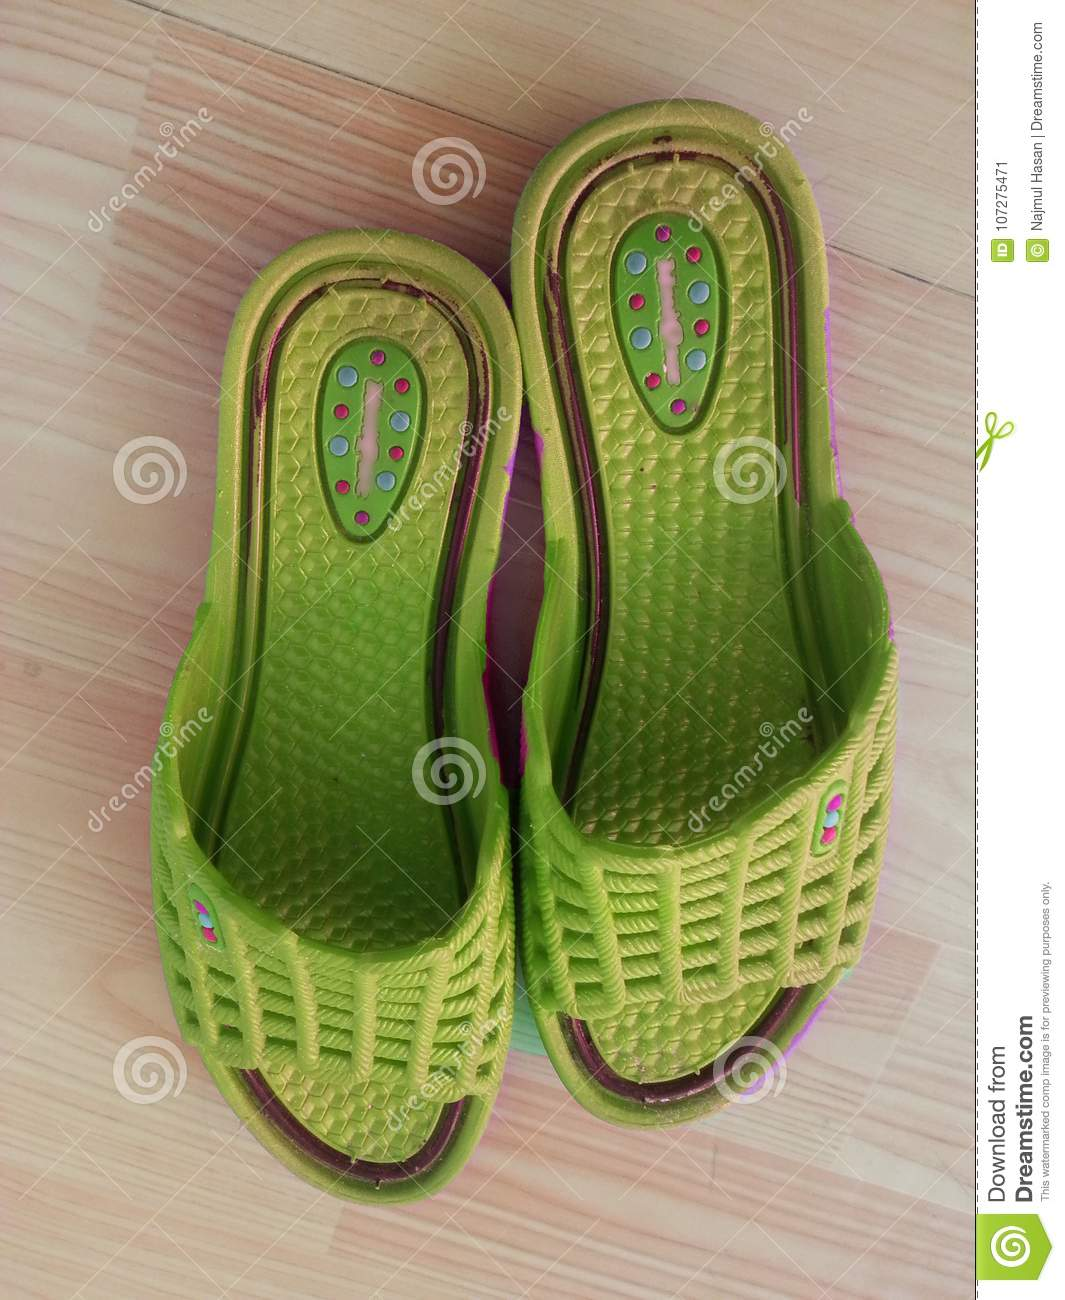 Ladies sandals or chappal for casual wearing at home